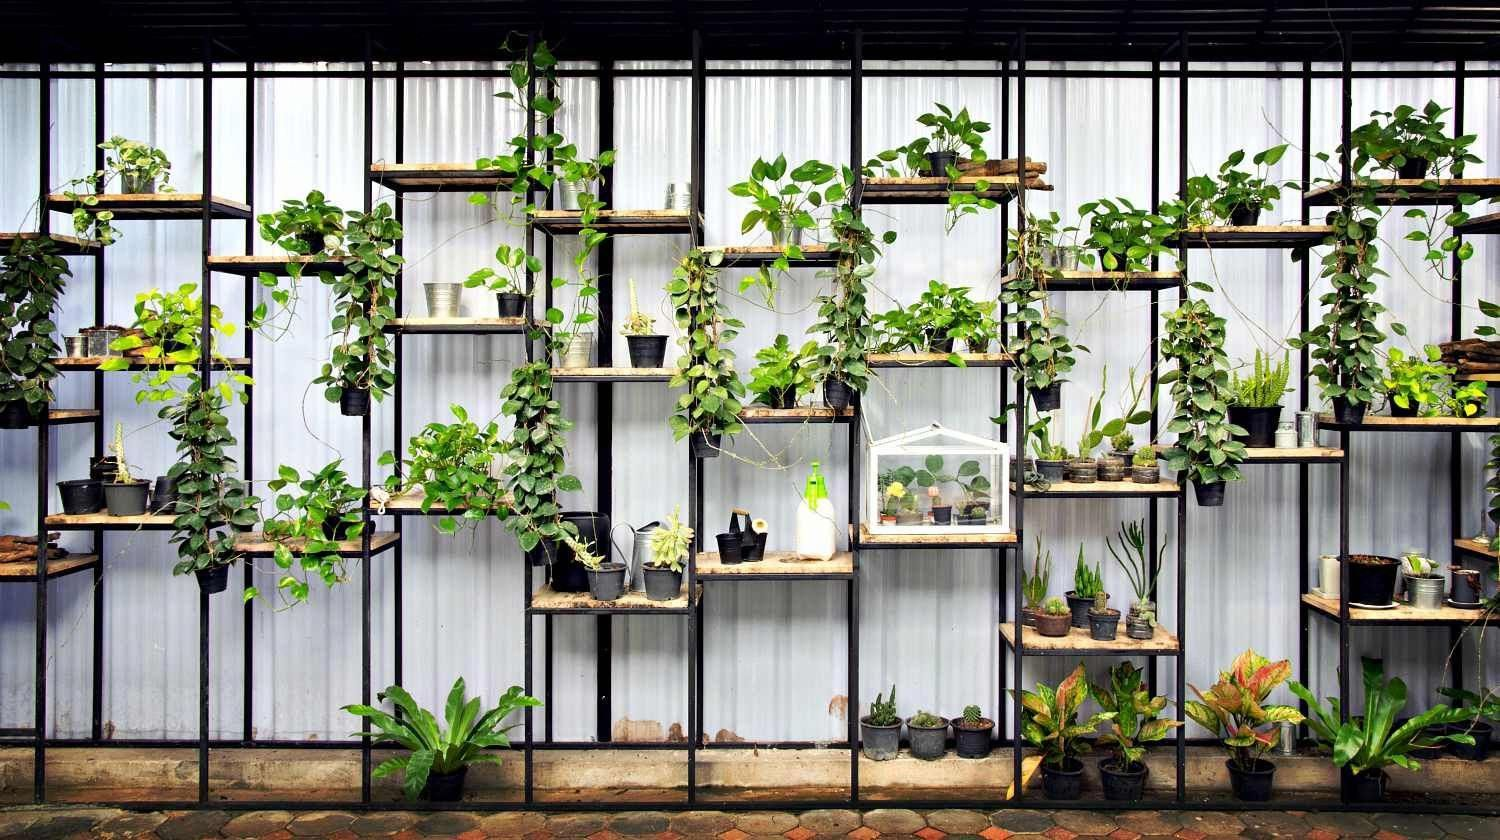 Feature | Shelf and box of tree plants decoration on wall | DIY Indoor Vertical Herb Garden #senkrechtangelegtekräutergärten Feature | Shelf and box of tree plants decoration on wall | DIY Indoor Vertical Herb Garden #senkrechtangelegtekräutergärten